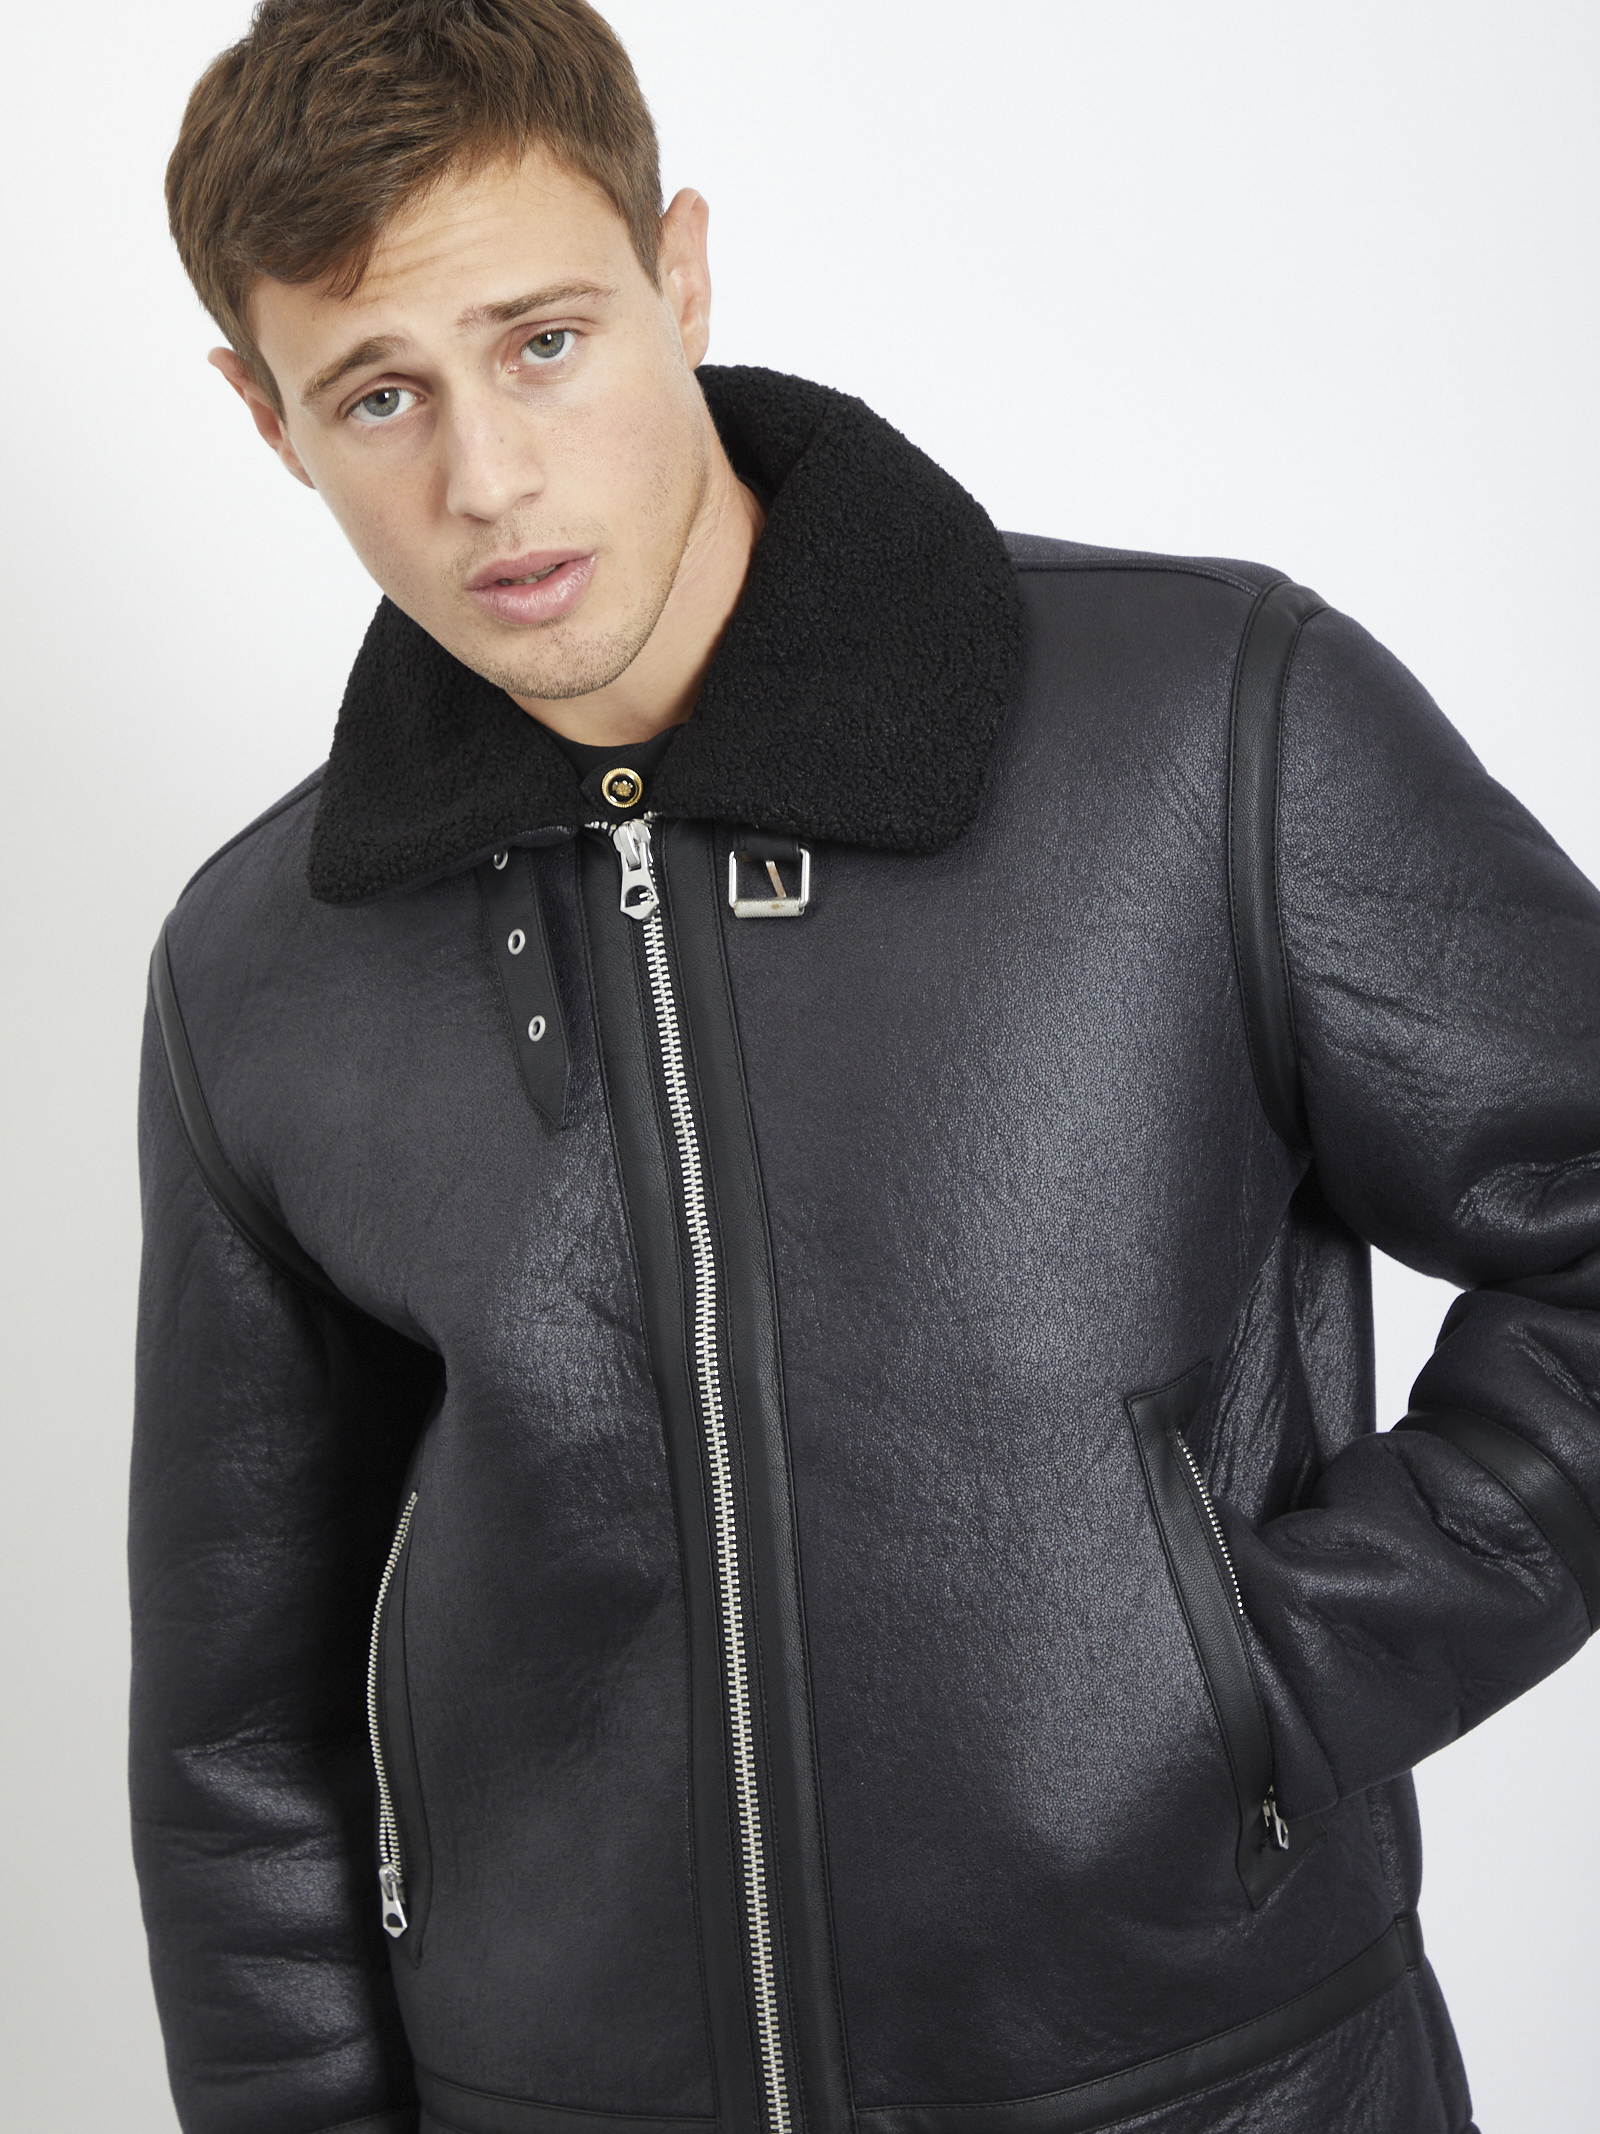 sheepskin JACK & JONES | Jacket | 12175523NERO